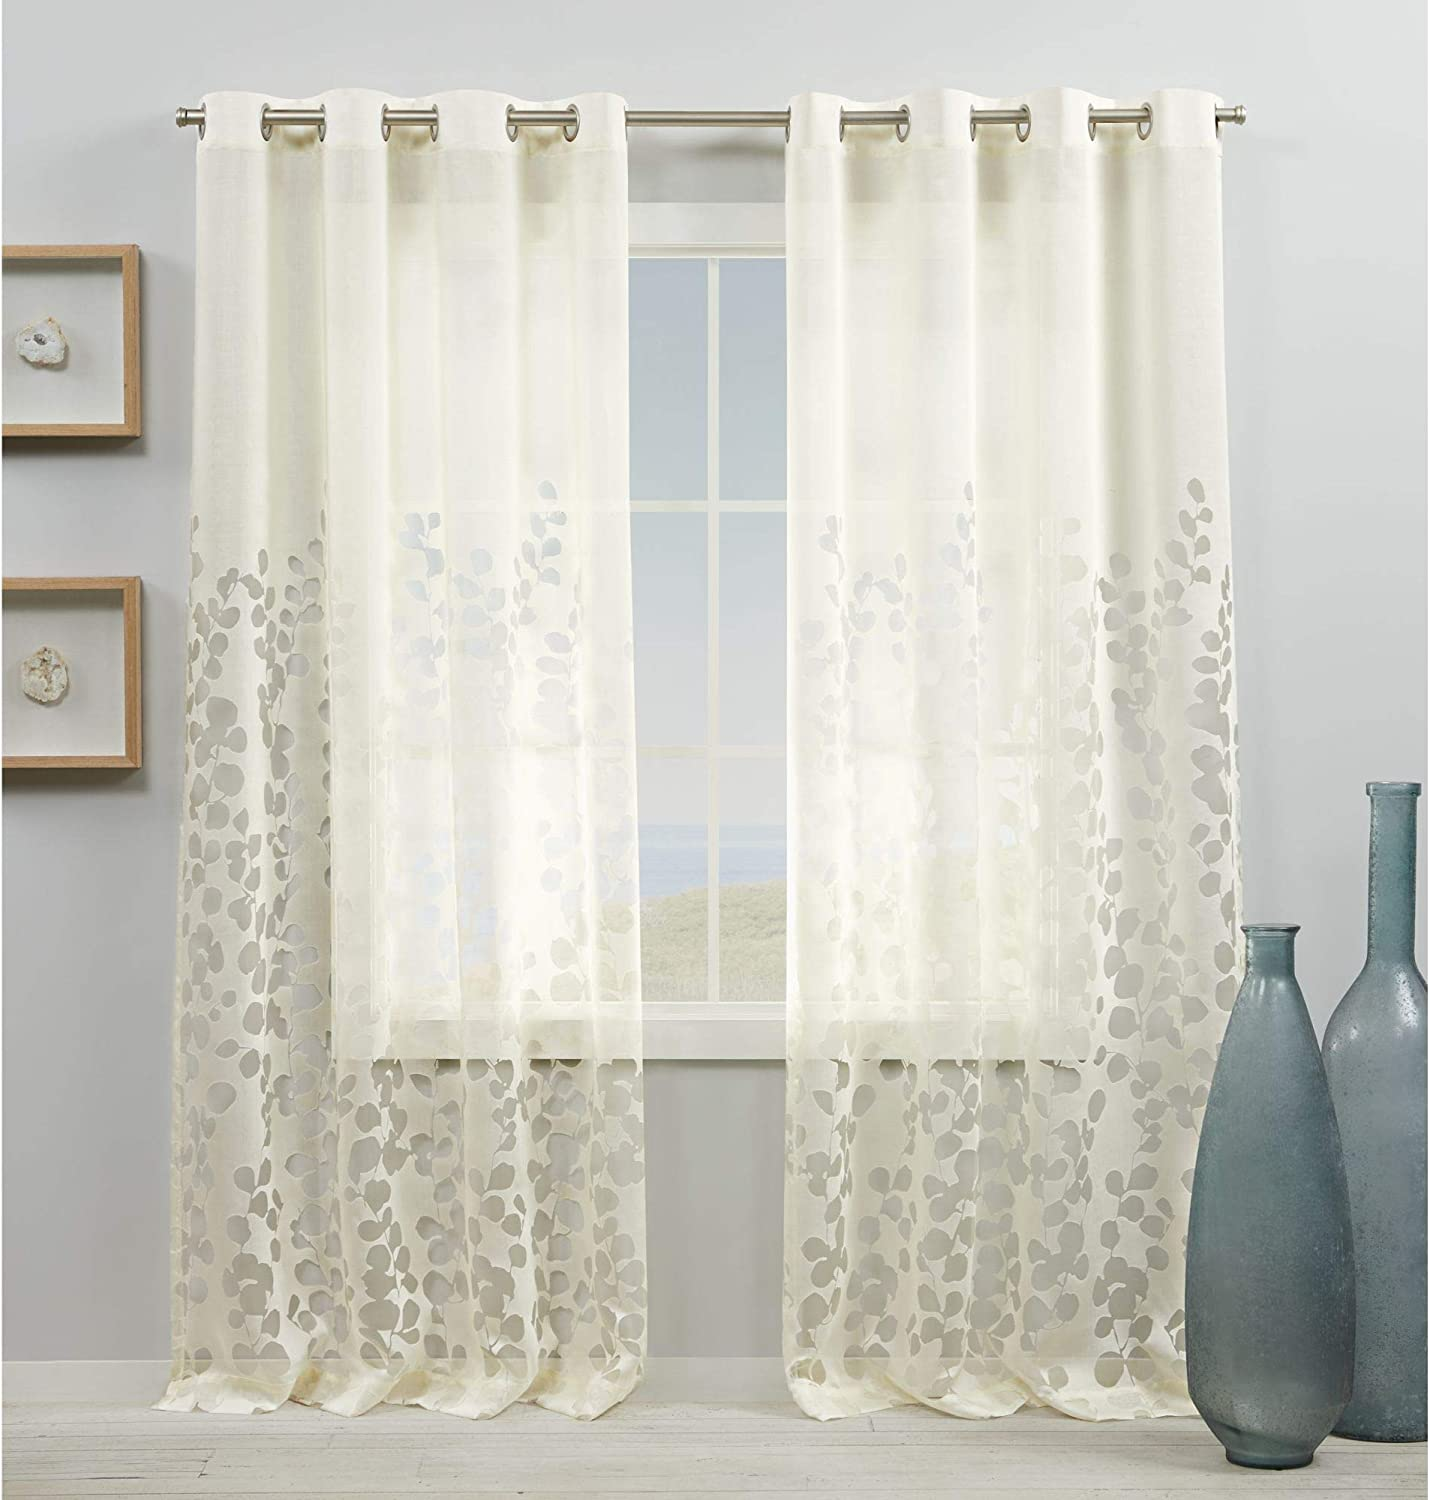 Exclusive Home Curtains Wilshire Burnout Sheer Grommet Top Curtain Panel Pair, 54x84, Ivory